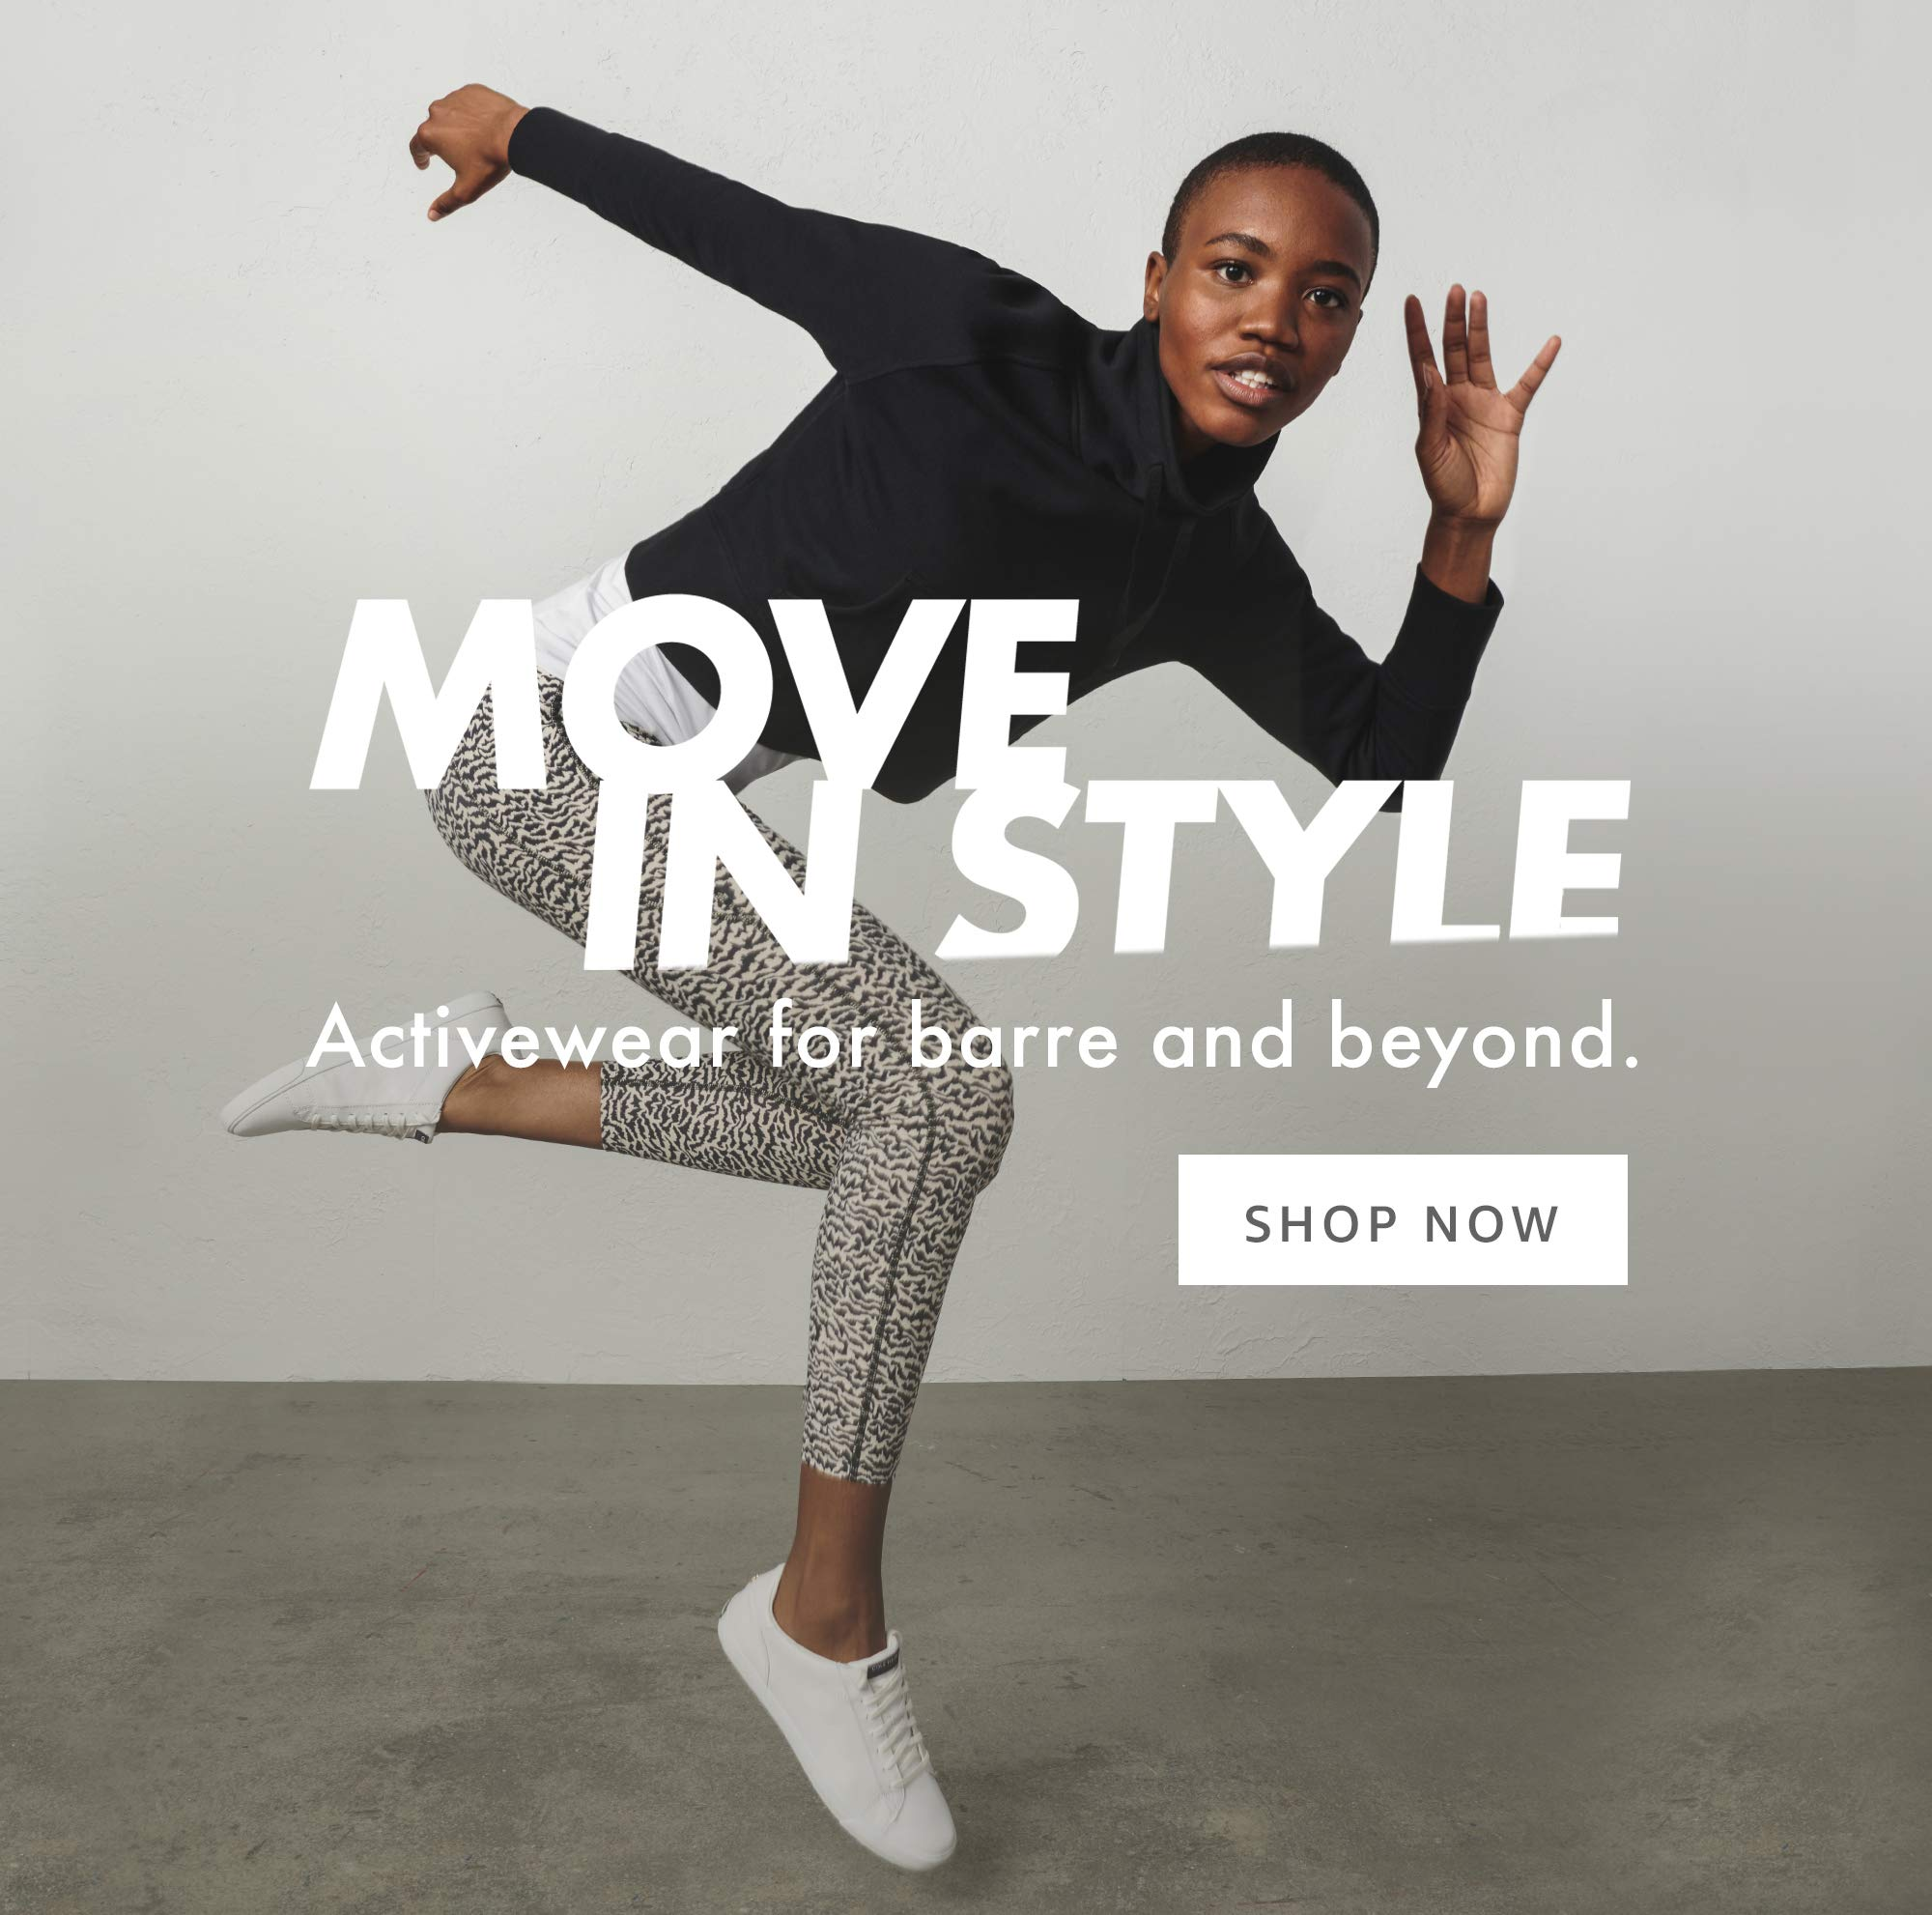 Move In Style Activewear for barre and beyond